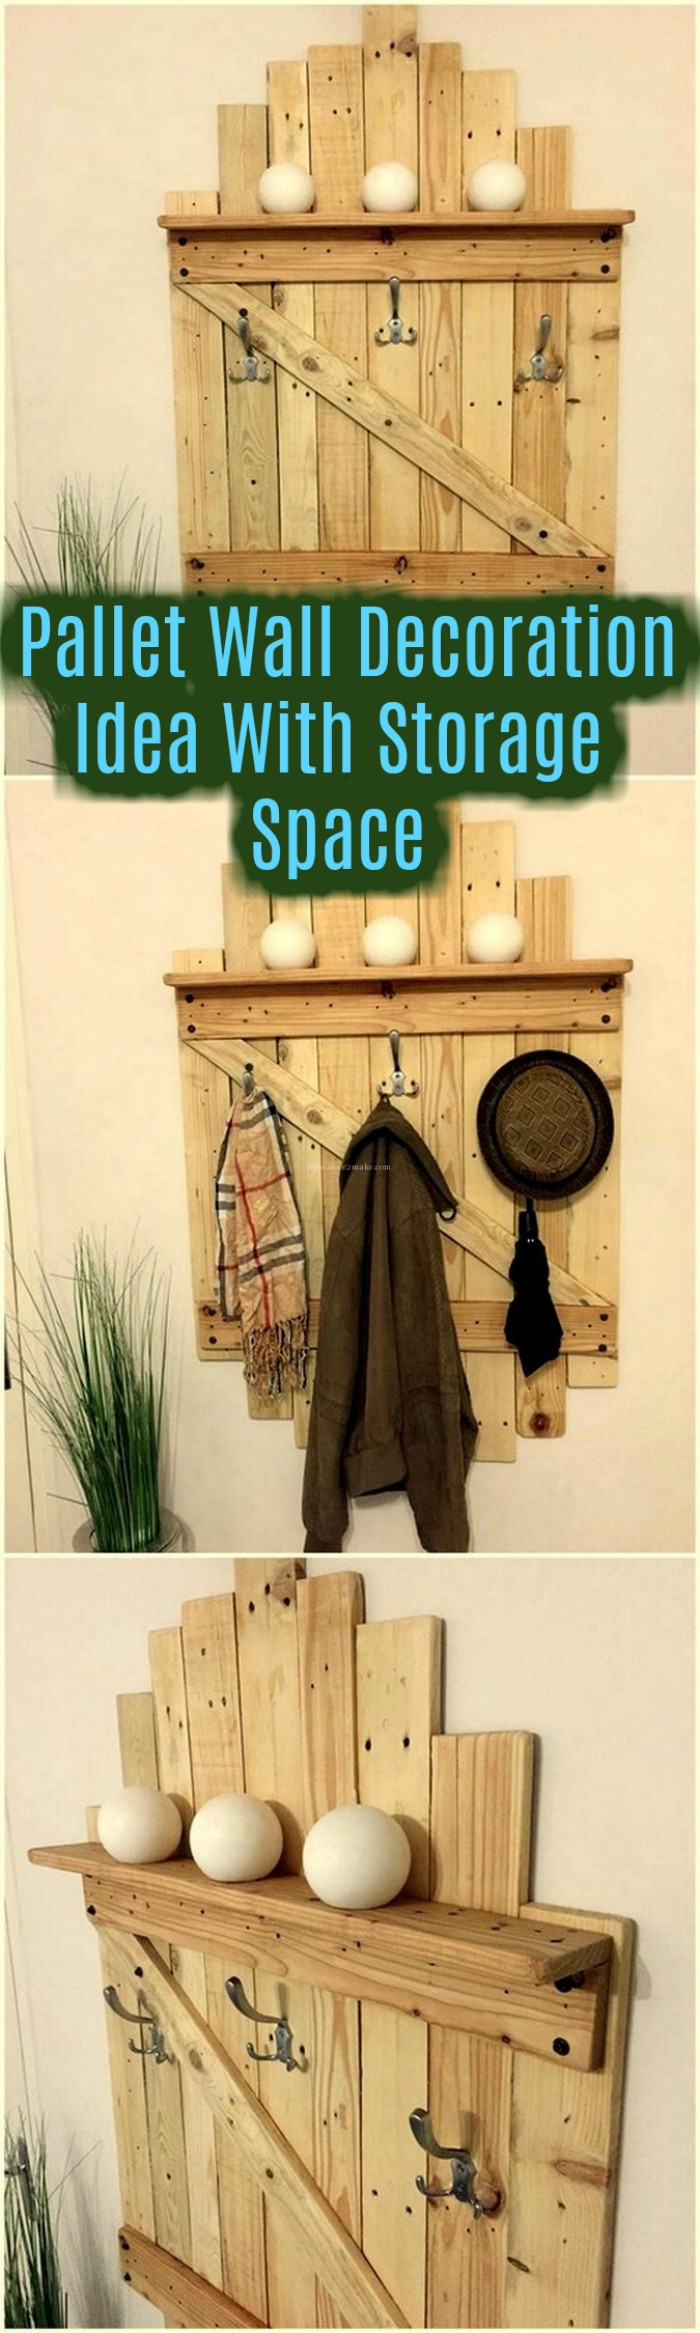 Pallet Wall Decoration Idea With Storage Space pallet crafts | pallet crafts diy |